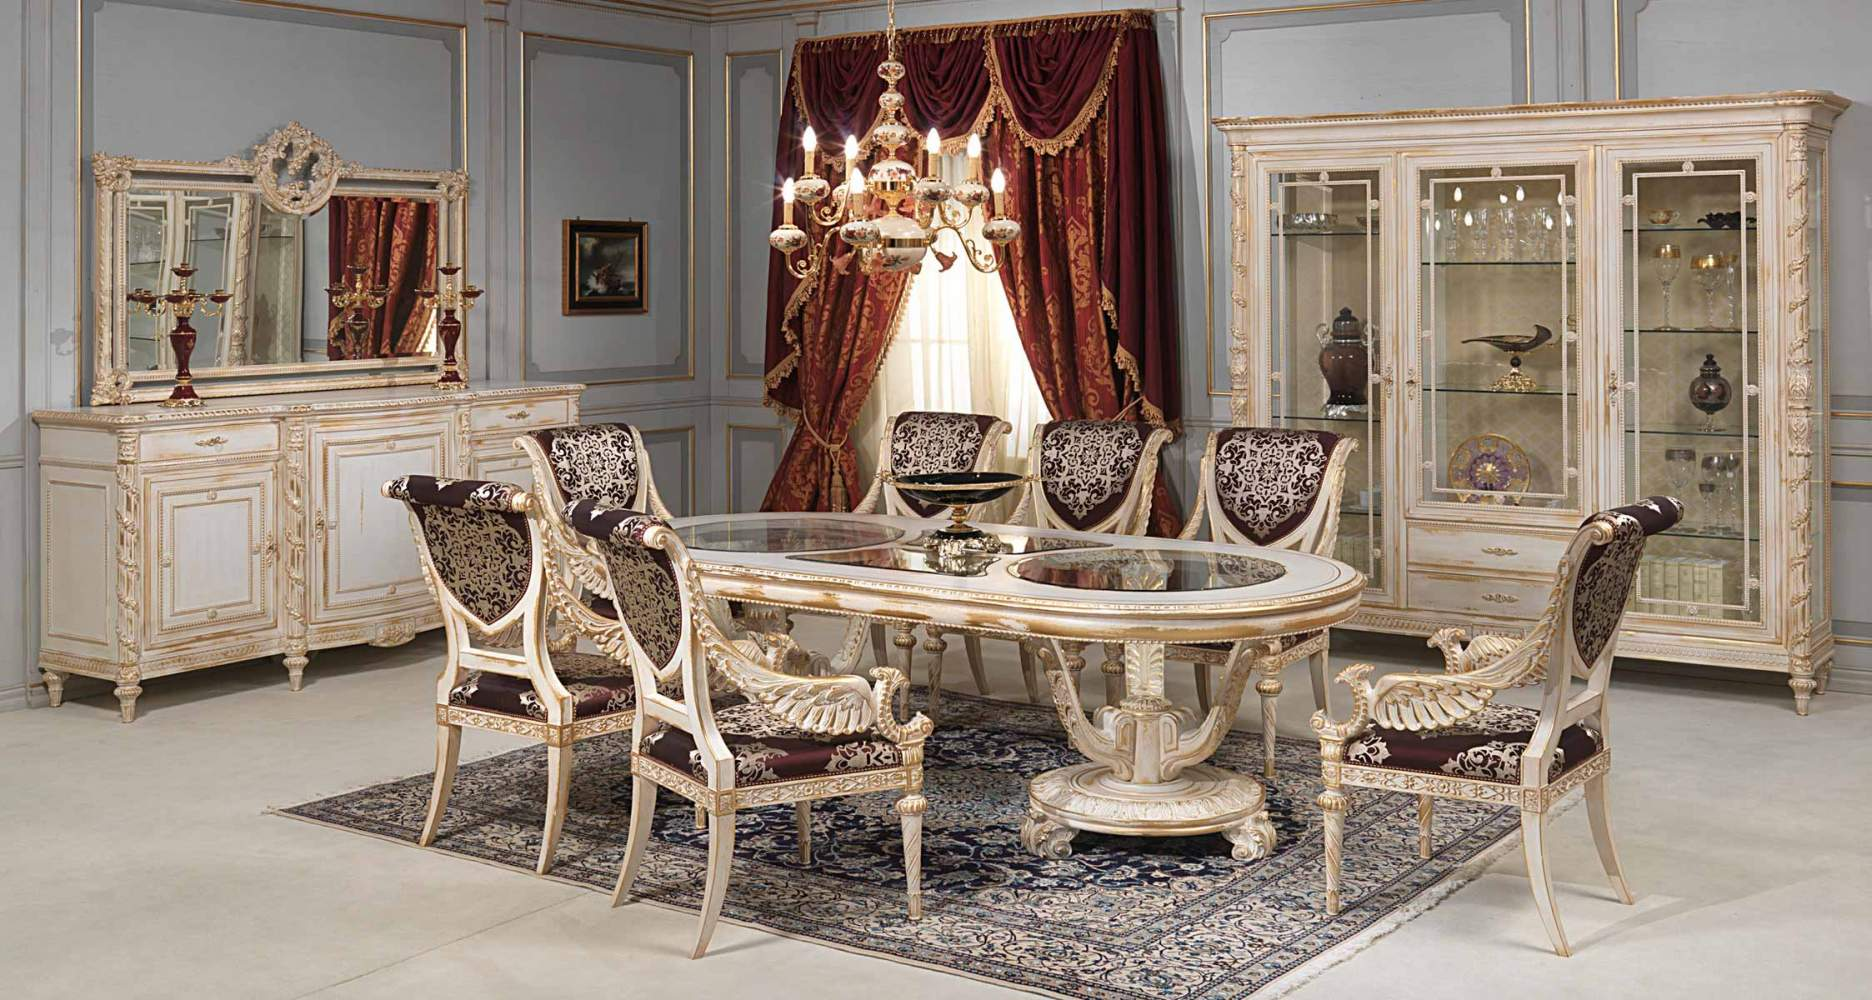 White and Gold dining room in Louis XVI style